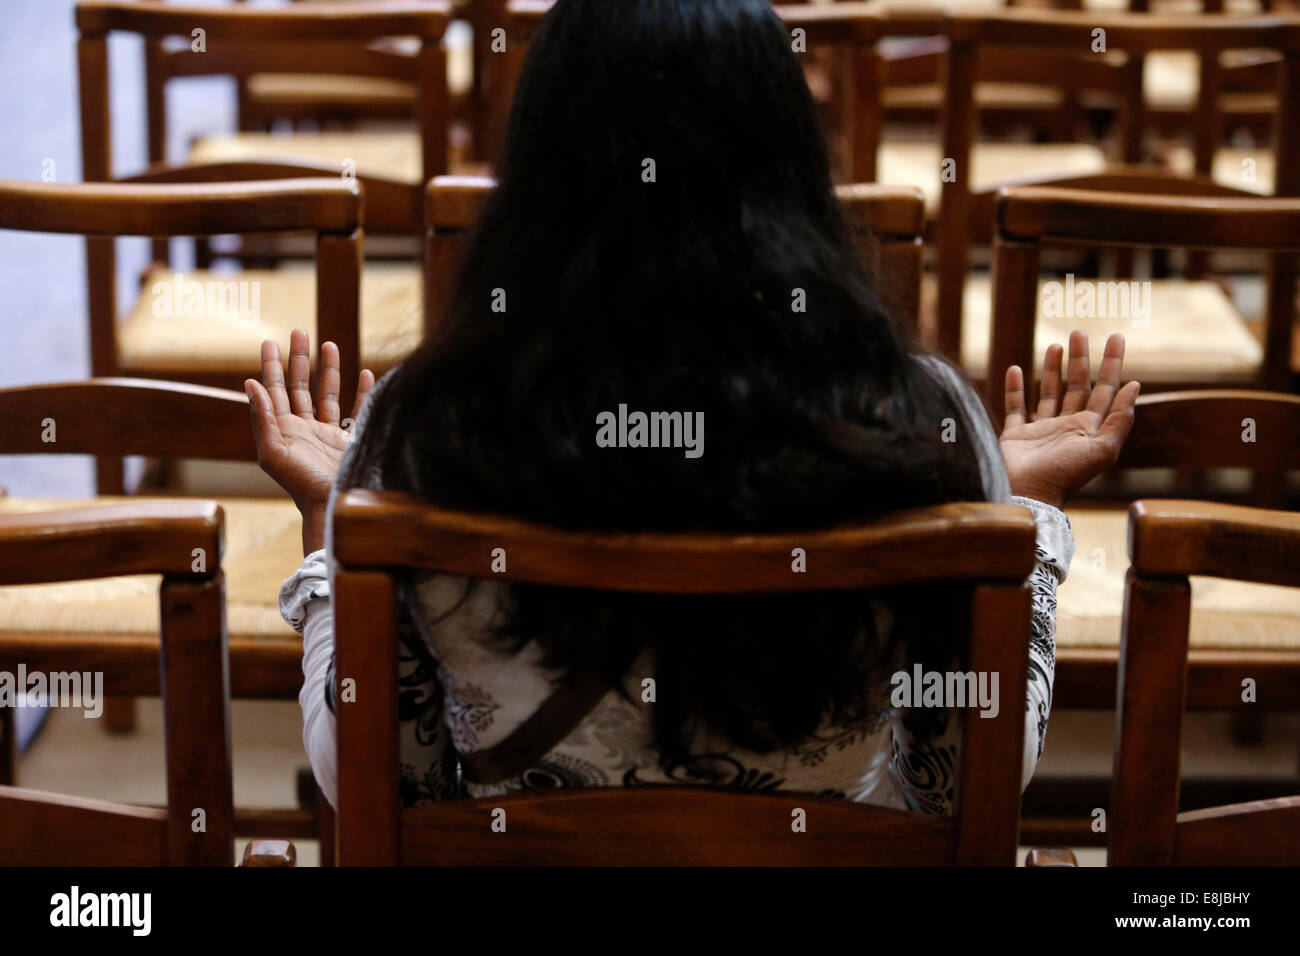 Basilica of St. Denis. Woman praying in the nave, turned towards the altar. - Stock Image